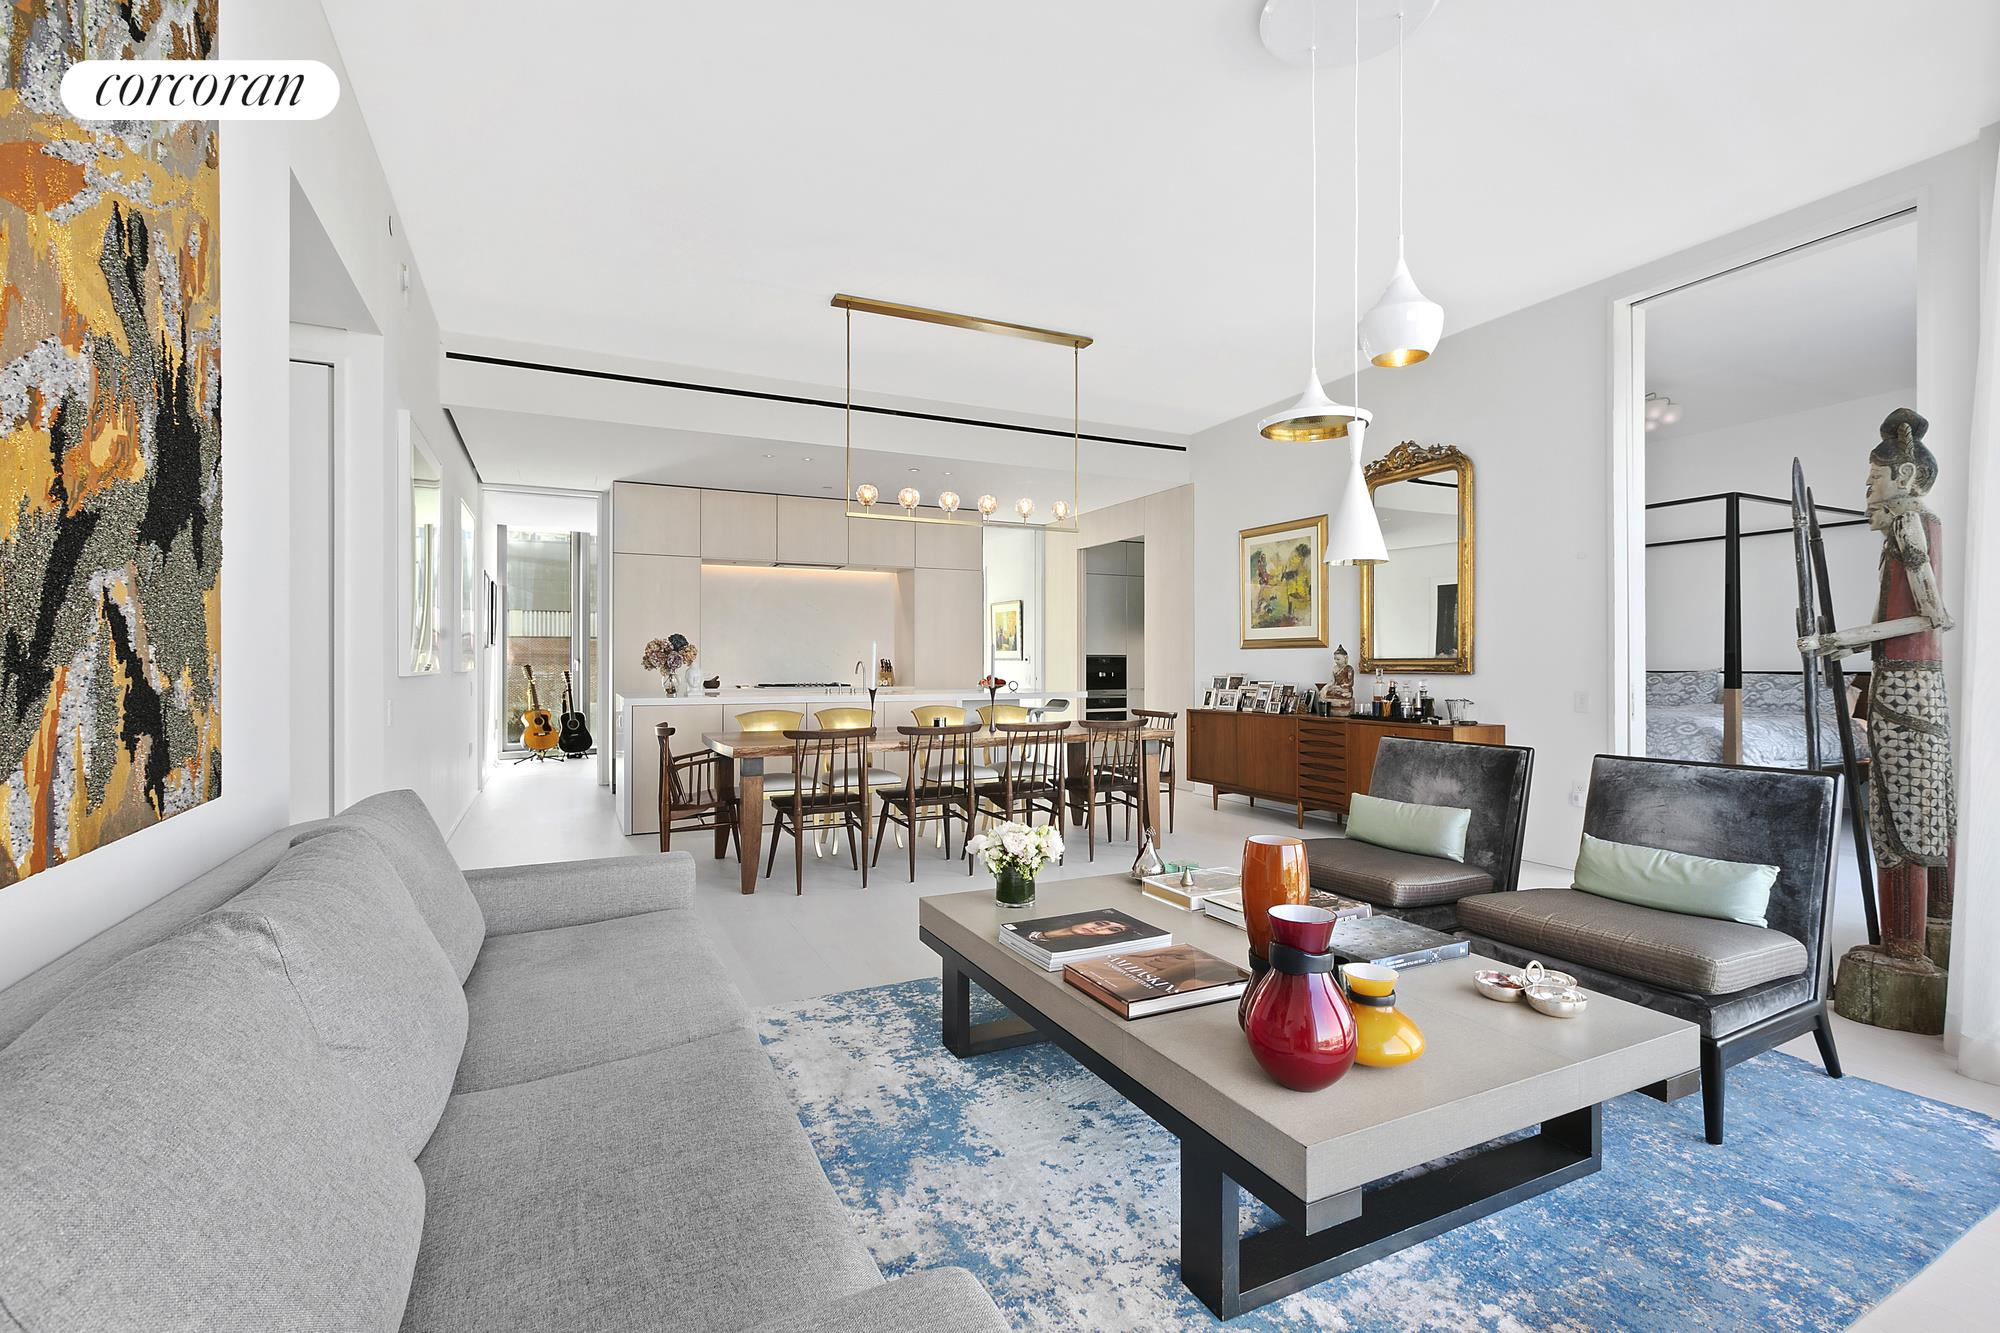 Situated along the Hudson River waterfront in the West Village, this stunning home is the one-of-a-kind, inspired by a collaboration from renowned hotelier/real estate developer, Ian Schrager, and designed by Pritzker Prize winning architects, Herzog & De Meuron.160 Leroy Street North 5A is an approximately 2,046 square foot, 3 bedroom, 3.5 bathroom home with North, West and East exposures with sweeping Hudson River views and Sunsets. This home is beautifully proportioned and perfectly situated in the north tower of the building. Enjoy tons of light and breathtaking views through the 11' floor-to-ceiling windows, and an open floor plan that accommodates gracious living and entertaining while offering an abundance of wall space for art.Thoughtfully designed with two kitchen elements, the top of the line kitchen features Scandinavian Larch wood cabinets, Sivec marble slab countertops and backsplash with appliances by Wolf, Gaggenau, Sub-Zero, and Miele. North 5A includes a separate enclosed Bulthaup Chef's kitchen with Sub-Zero and Wolf appliances including a refrigerator/freezer, wine refrigerator, steam oven, microwave oven, and a coffee/espresso machine.Beyond the Great Room, you will enter the spacious Western facing primary suite with en-suite spa bathroom adorned with Sivec marble, a Kaldewei soaking tub, heated floors, and a custom-designed shower. The second bedroom has stunning views of the garden, and an en-suite bathroom.The 3rd bedroom with en-suite bathroom has the flexibility to convert into a library or media room; with its pocket doors concealed, the space flows into the living space, providing simultaneous East and West exposures.The stunning powder room is clad in floor to ceiling Scandinavian Larch wood with a custom floating vanity and brushed copper fixtures.Ideally located in the heart of the West Village, 160 Leroy is a full-service building with a concierge, a 24-hour doorman, and luxurious amenities, complete with a cobblestone porte-cochere, 